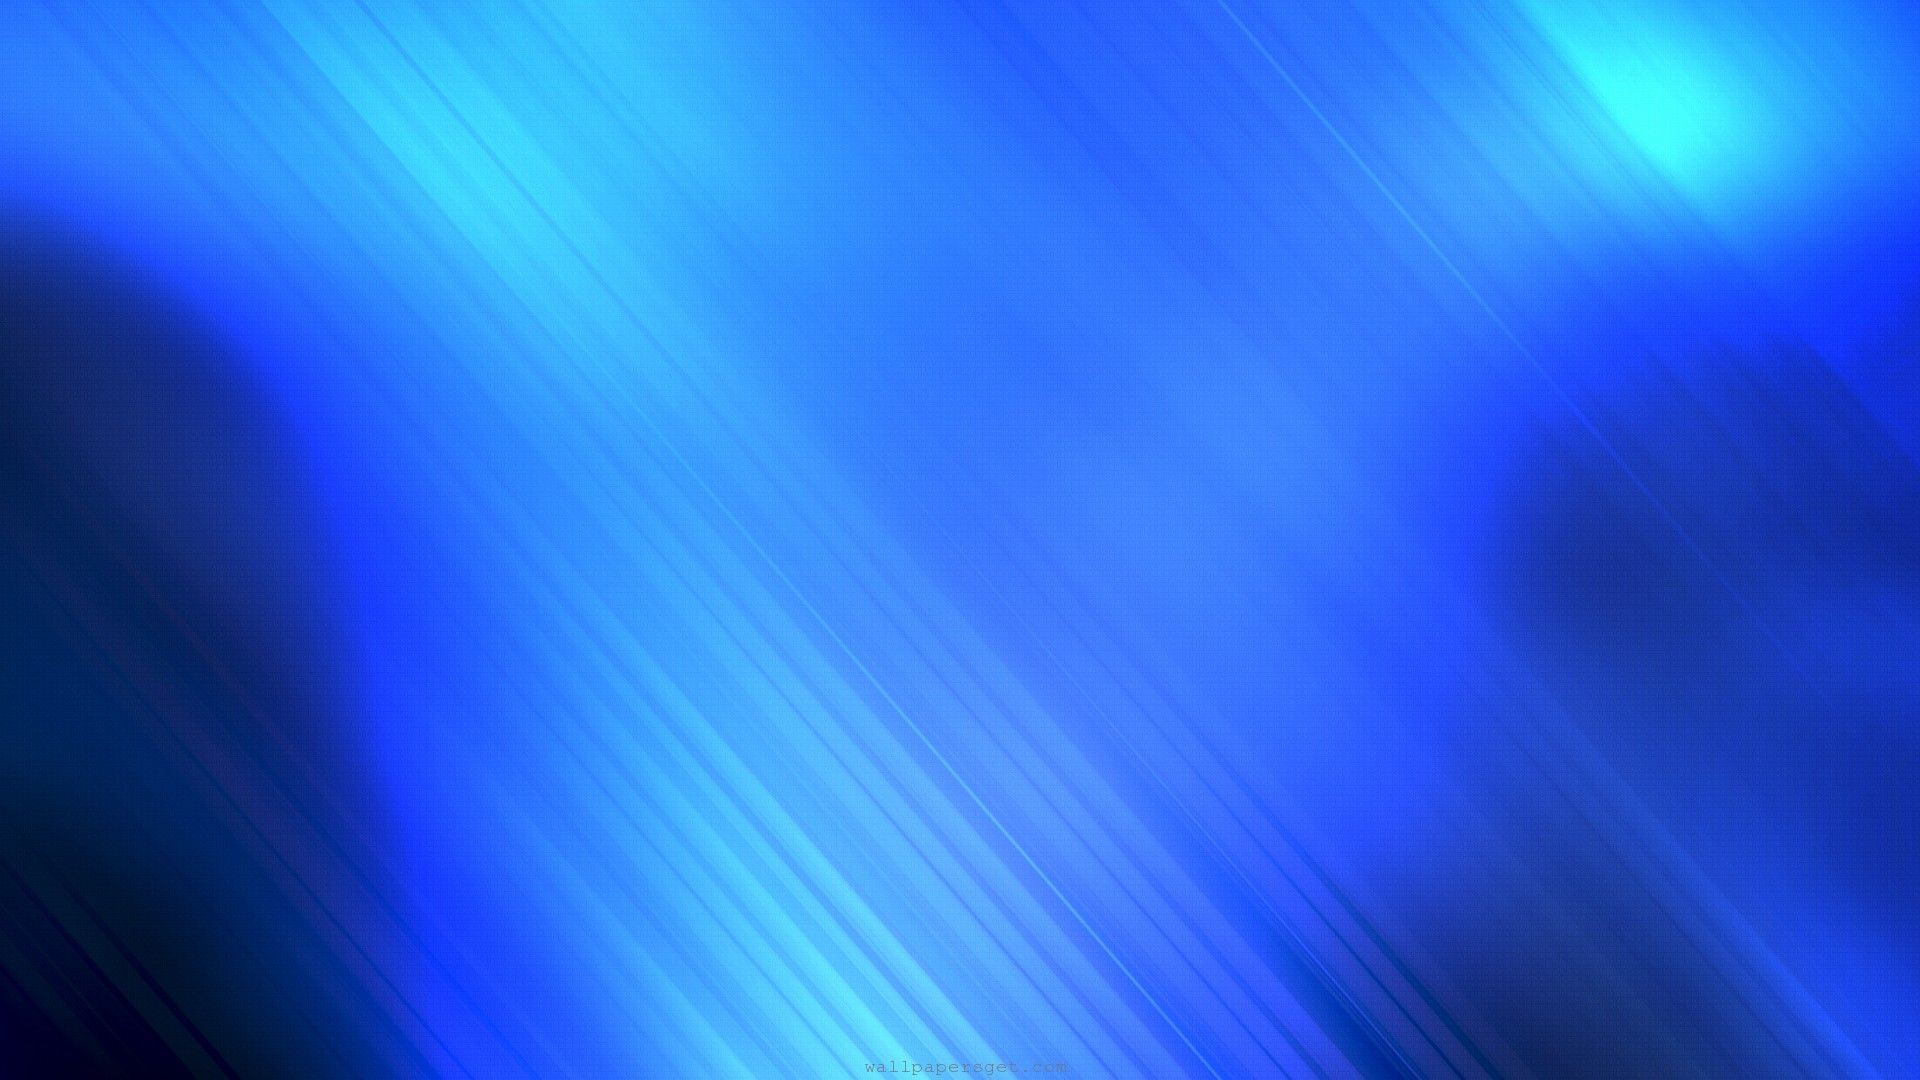 blue abstract background 2042 hd wallpapers in abstract - imagesci